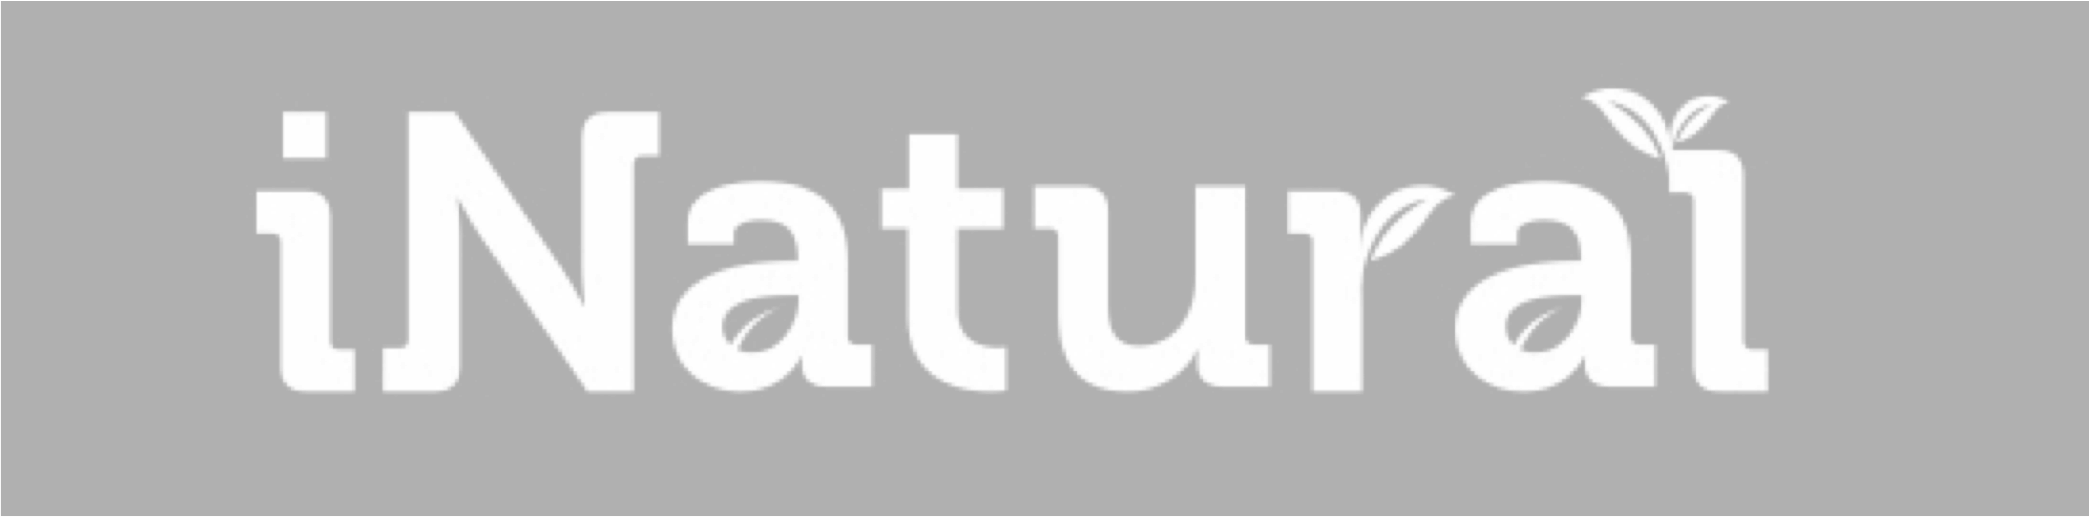 iNatural Gray logo